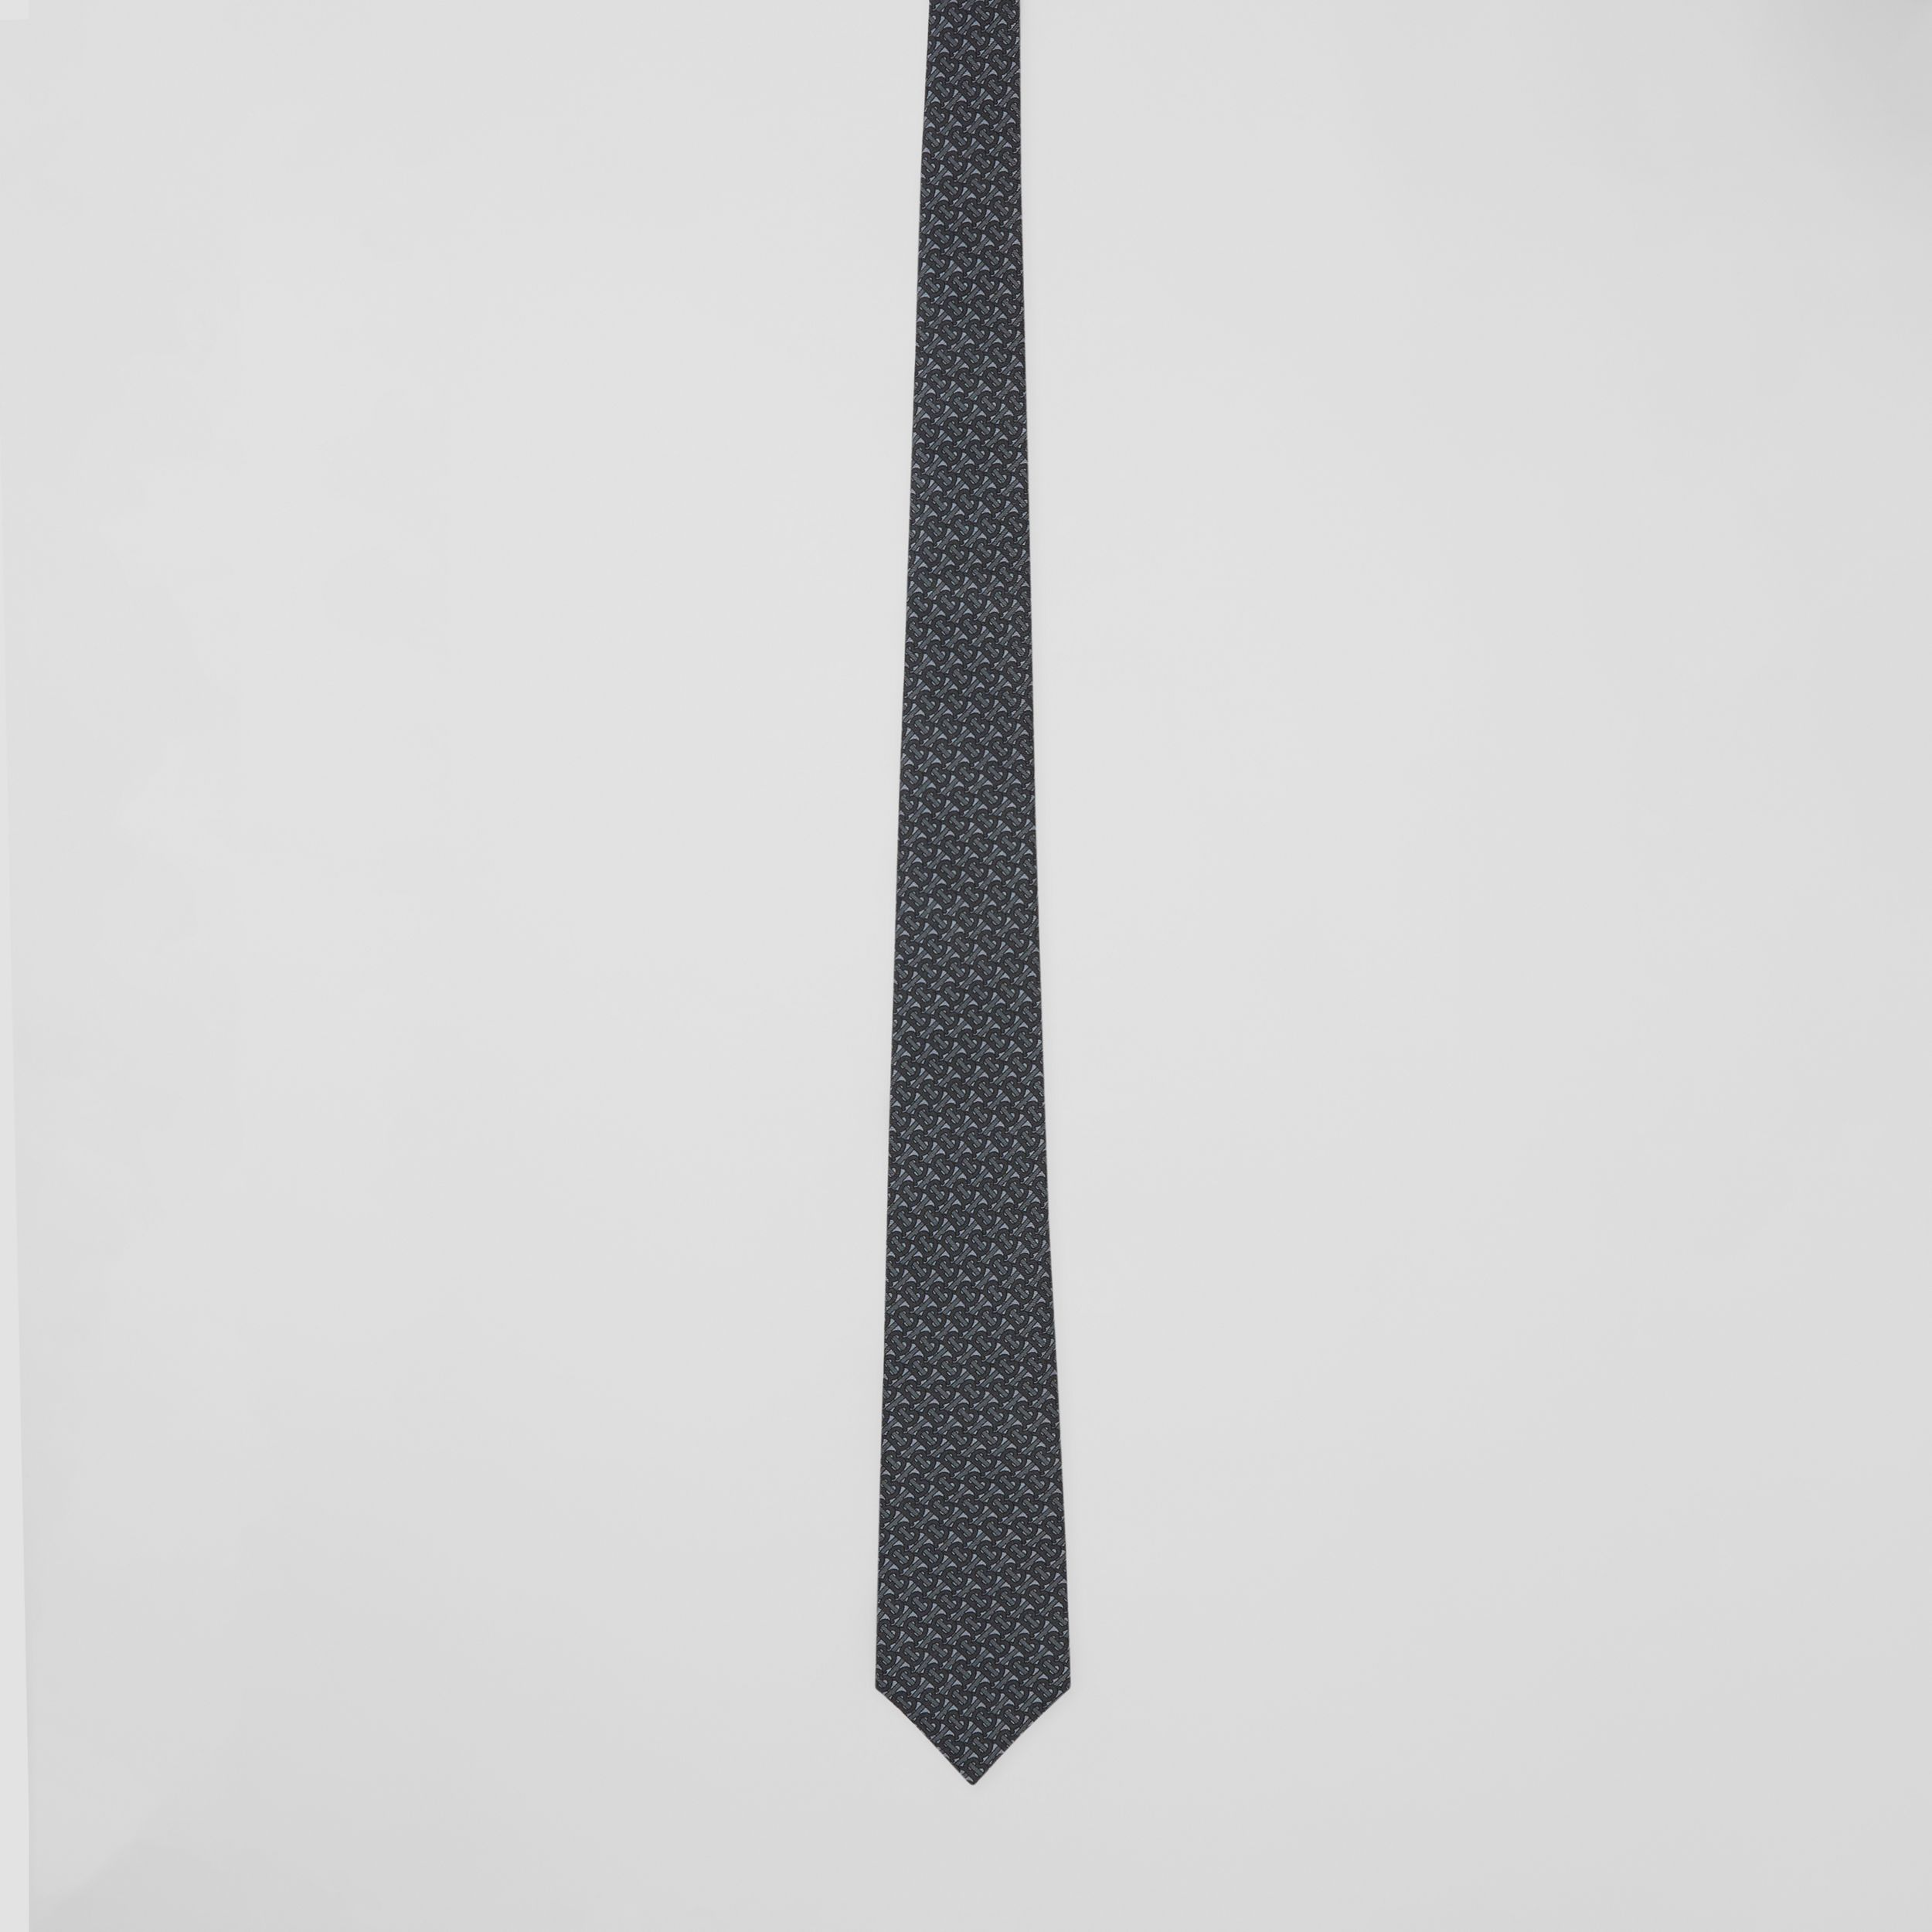 Classic Cut Monogram Silk Jacquard Tie in Mid Grey - Men | Burberry - 4